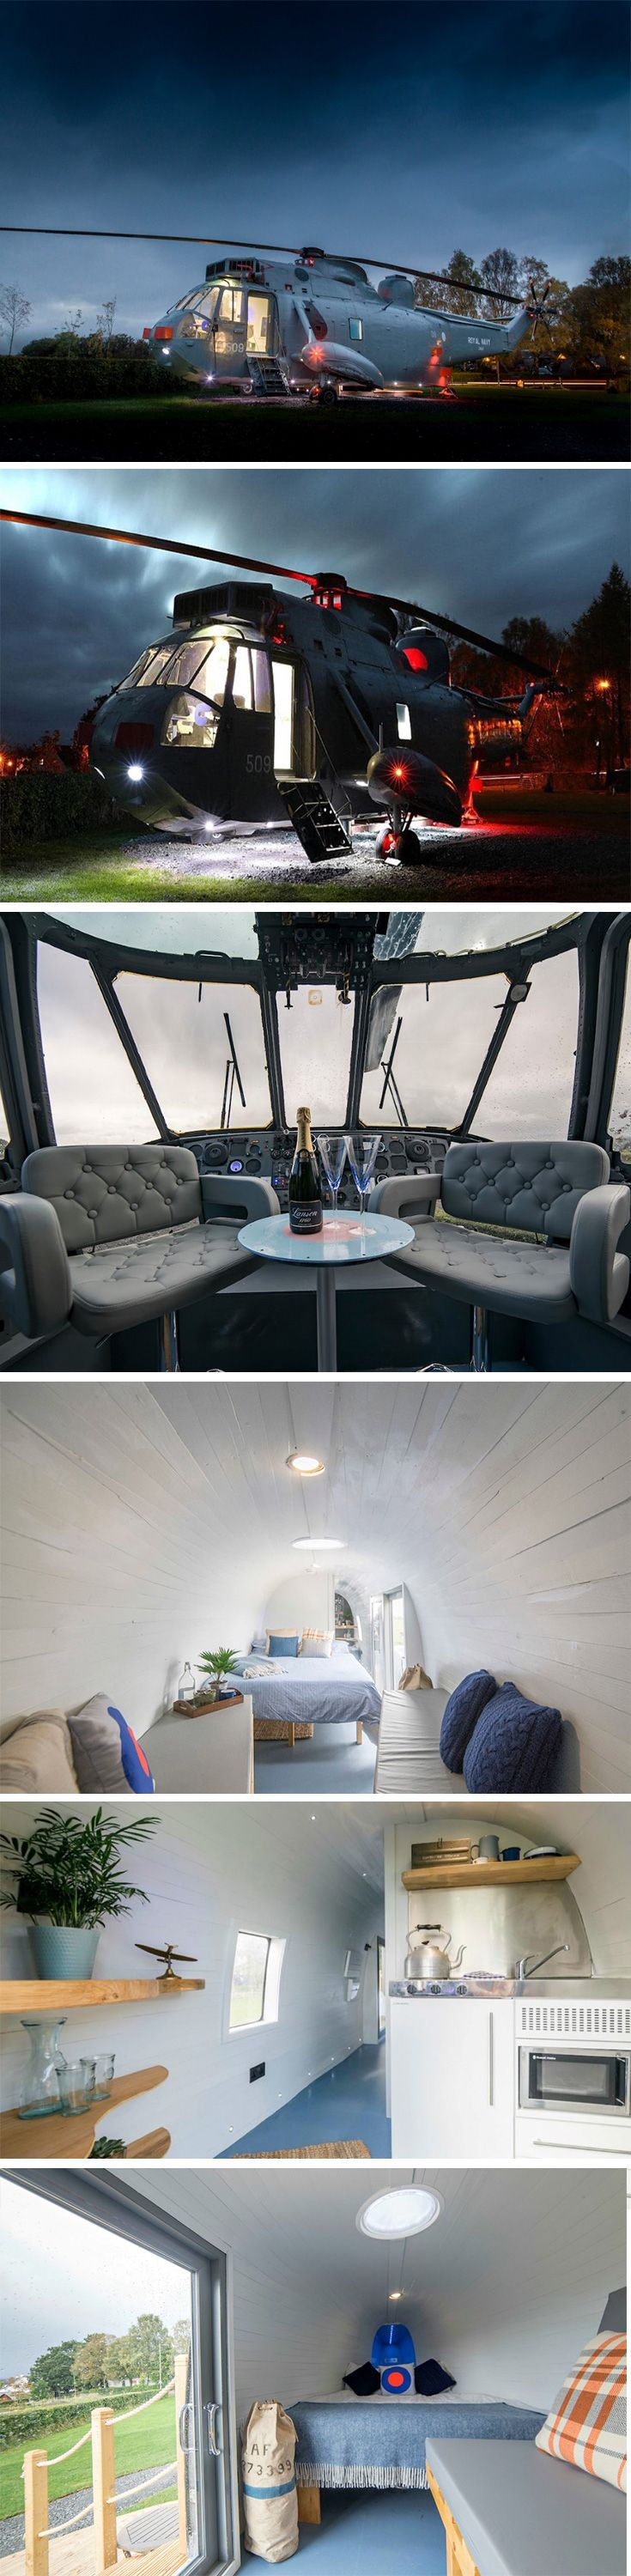 Martyn and Louise Steedman decided to convert their farmland into the perfect camping spot. However, they ditched the tents and settled for a massive  helicopter instead! The helicopter is now by far the world's coolest bed and breakfast spot ever! The helicopter's body was cleared out to make space for a  mini-kitchen, a shower-room, and sleeping space for 6. The chopper's decor on the inside is starkly different from its well-maintained outside.